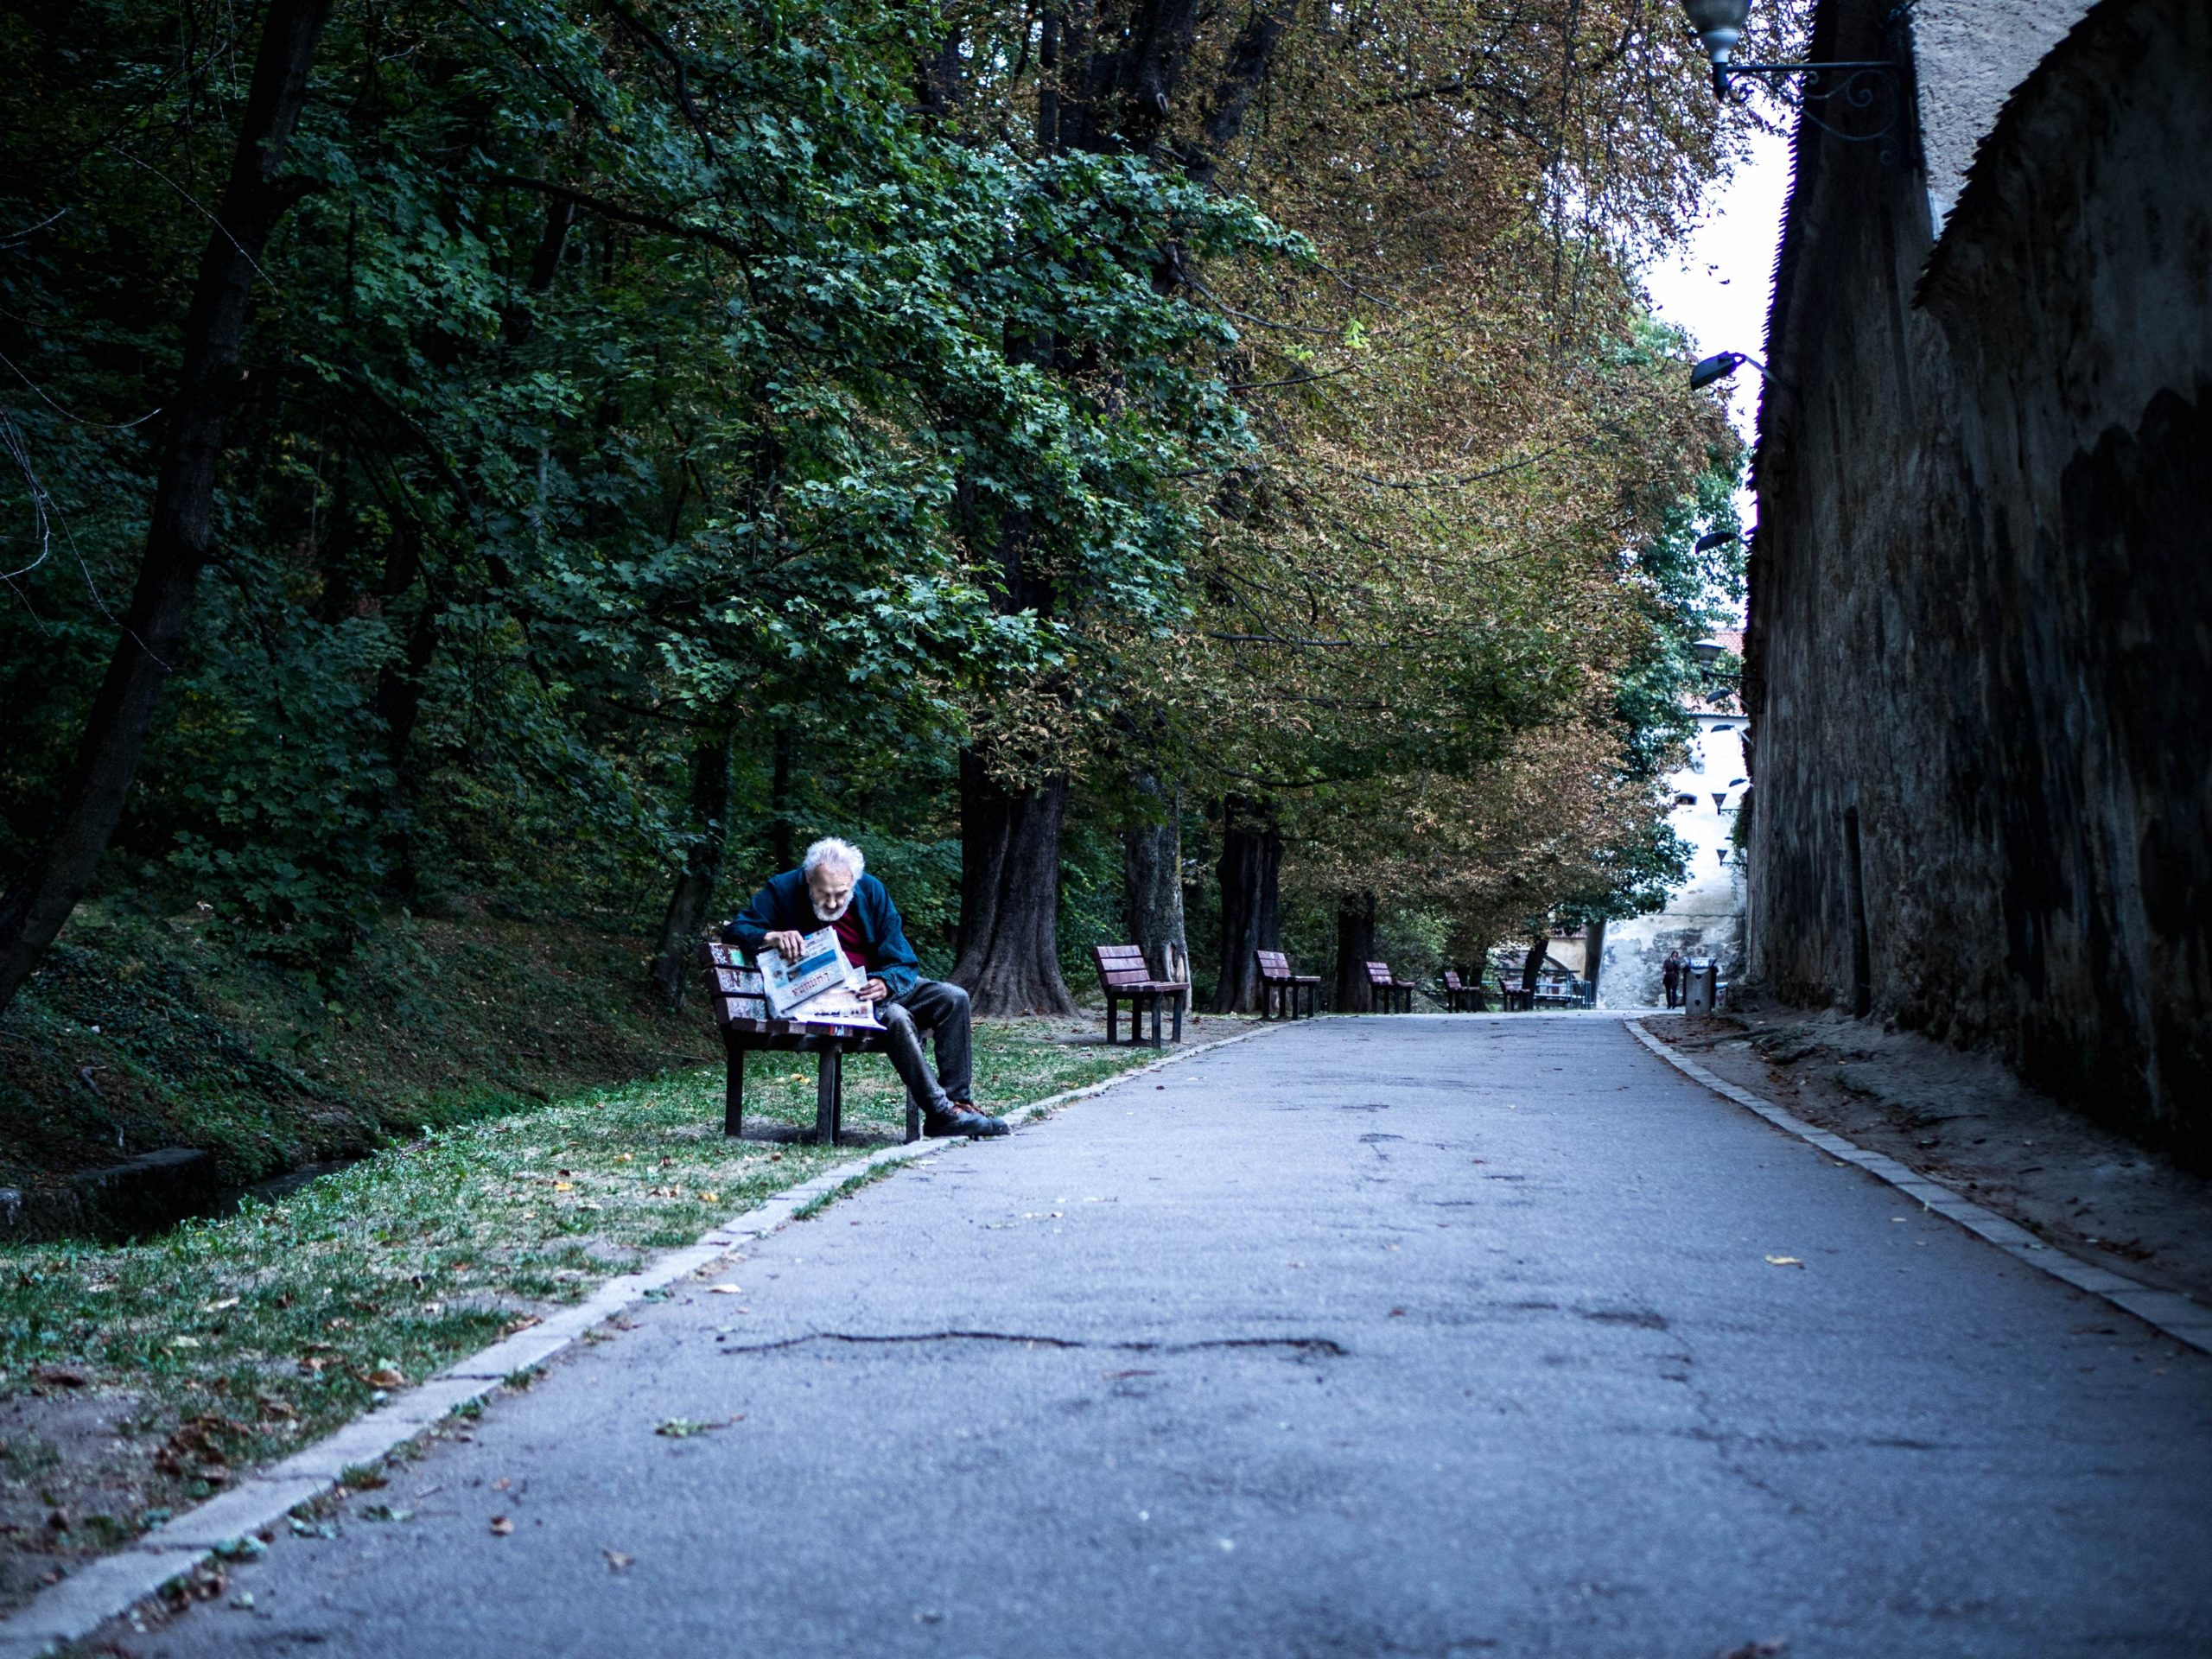 old-man-sitting-in-wodden-bench-reading-a-magazine